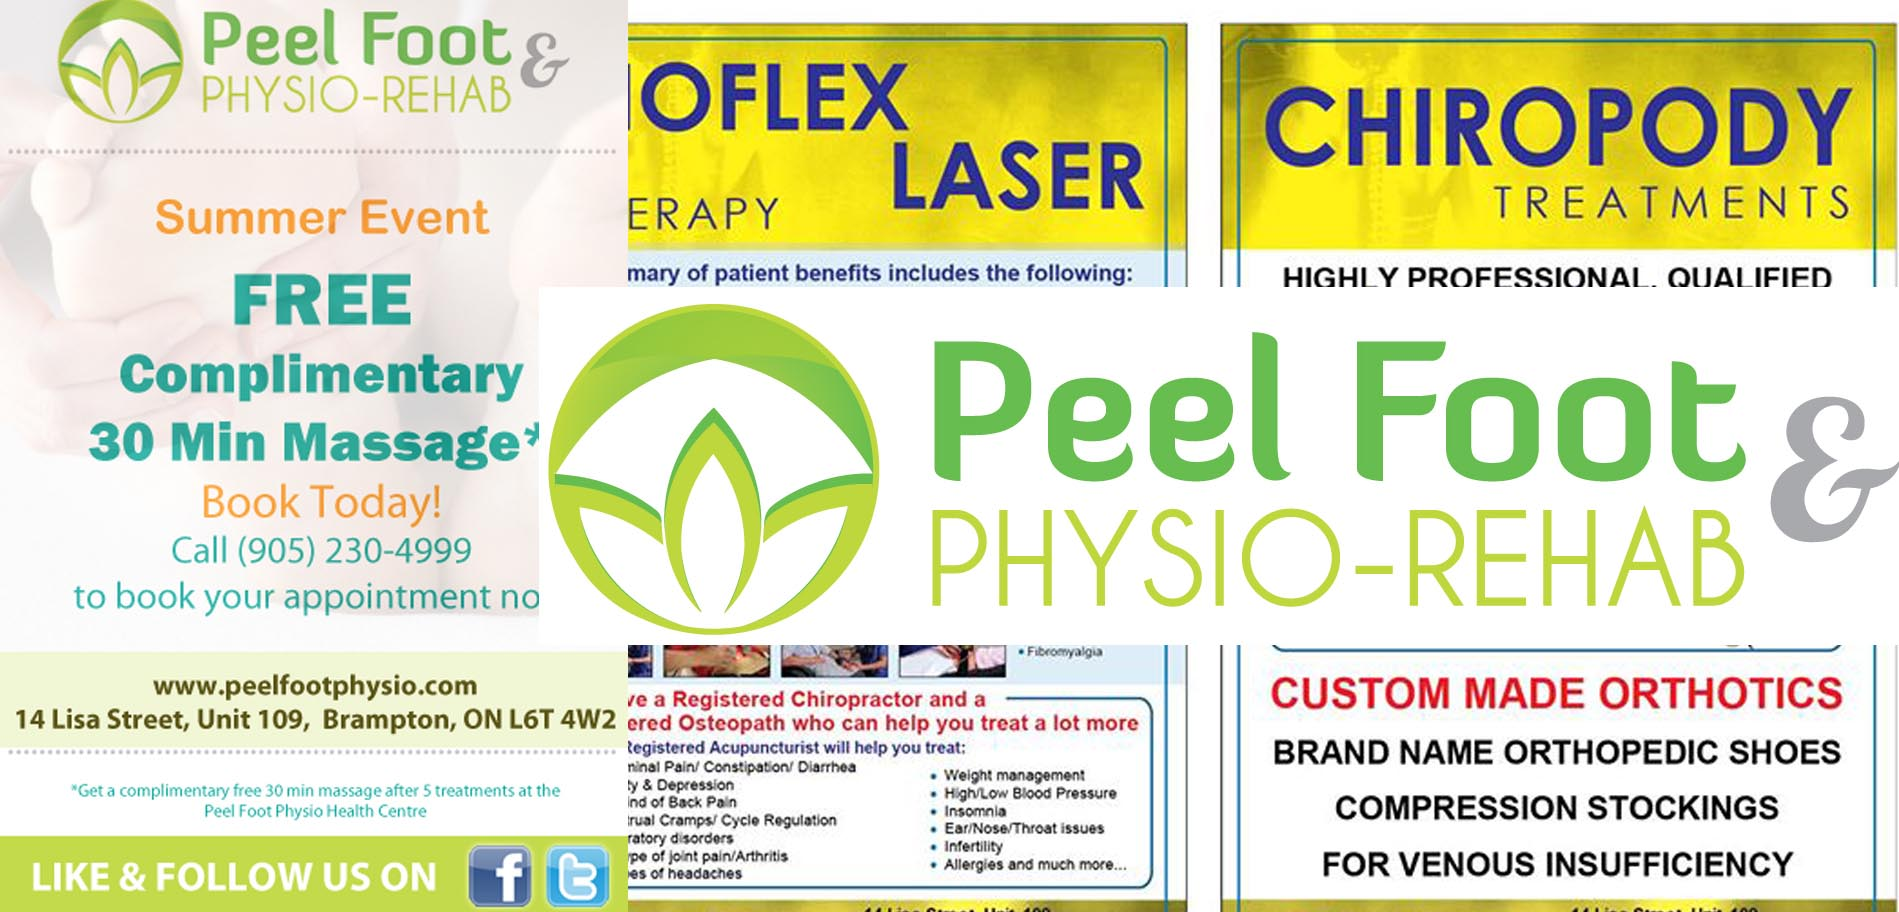 peel-foot-physiothewebmiracle